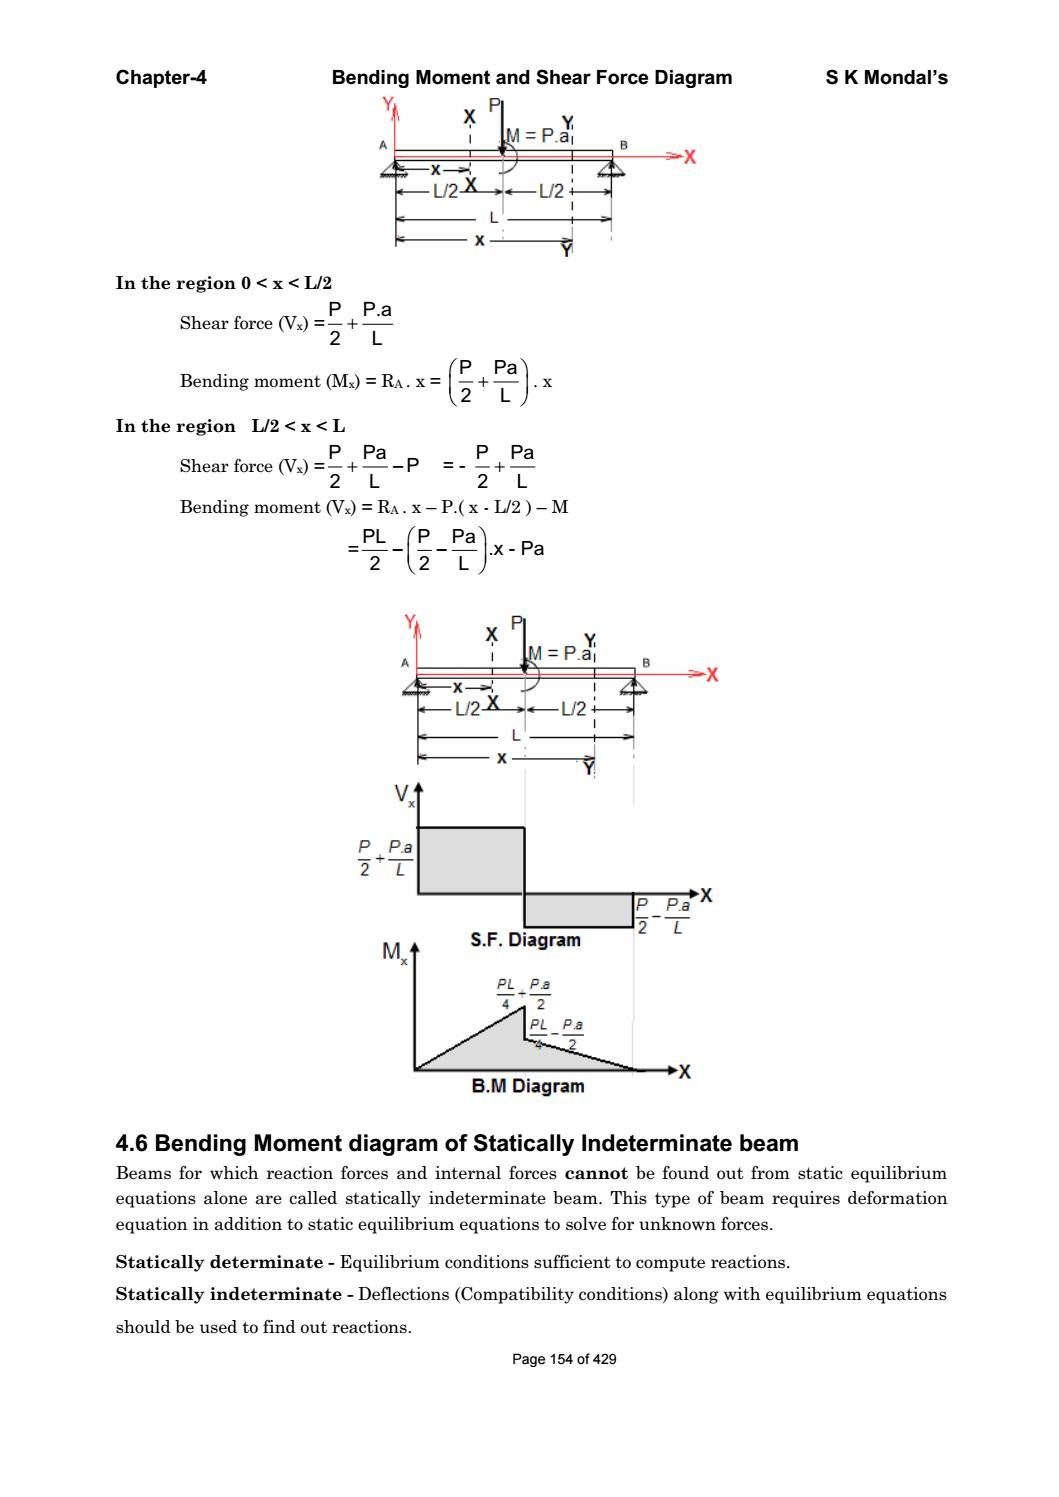 Strength Of Materials By S K Mondal Pdf Sdharmaraj Issuu Shear Force And Bending Moment Calculation Diagrams